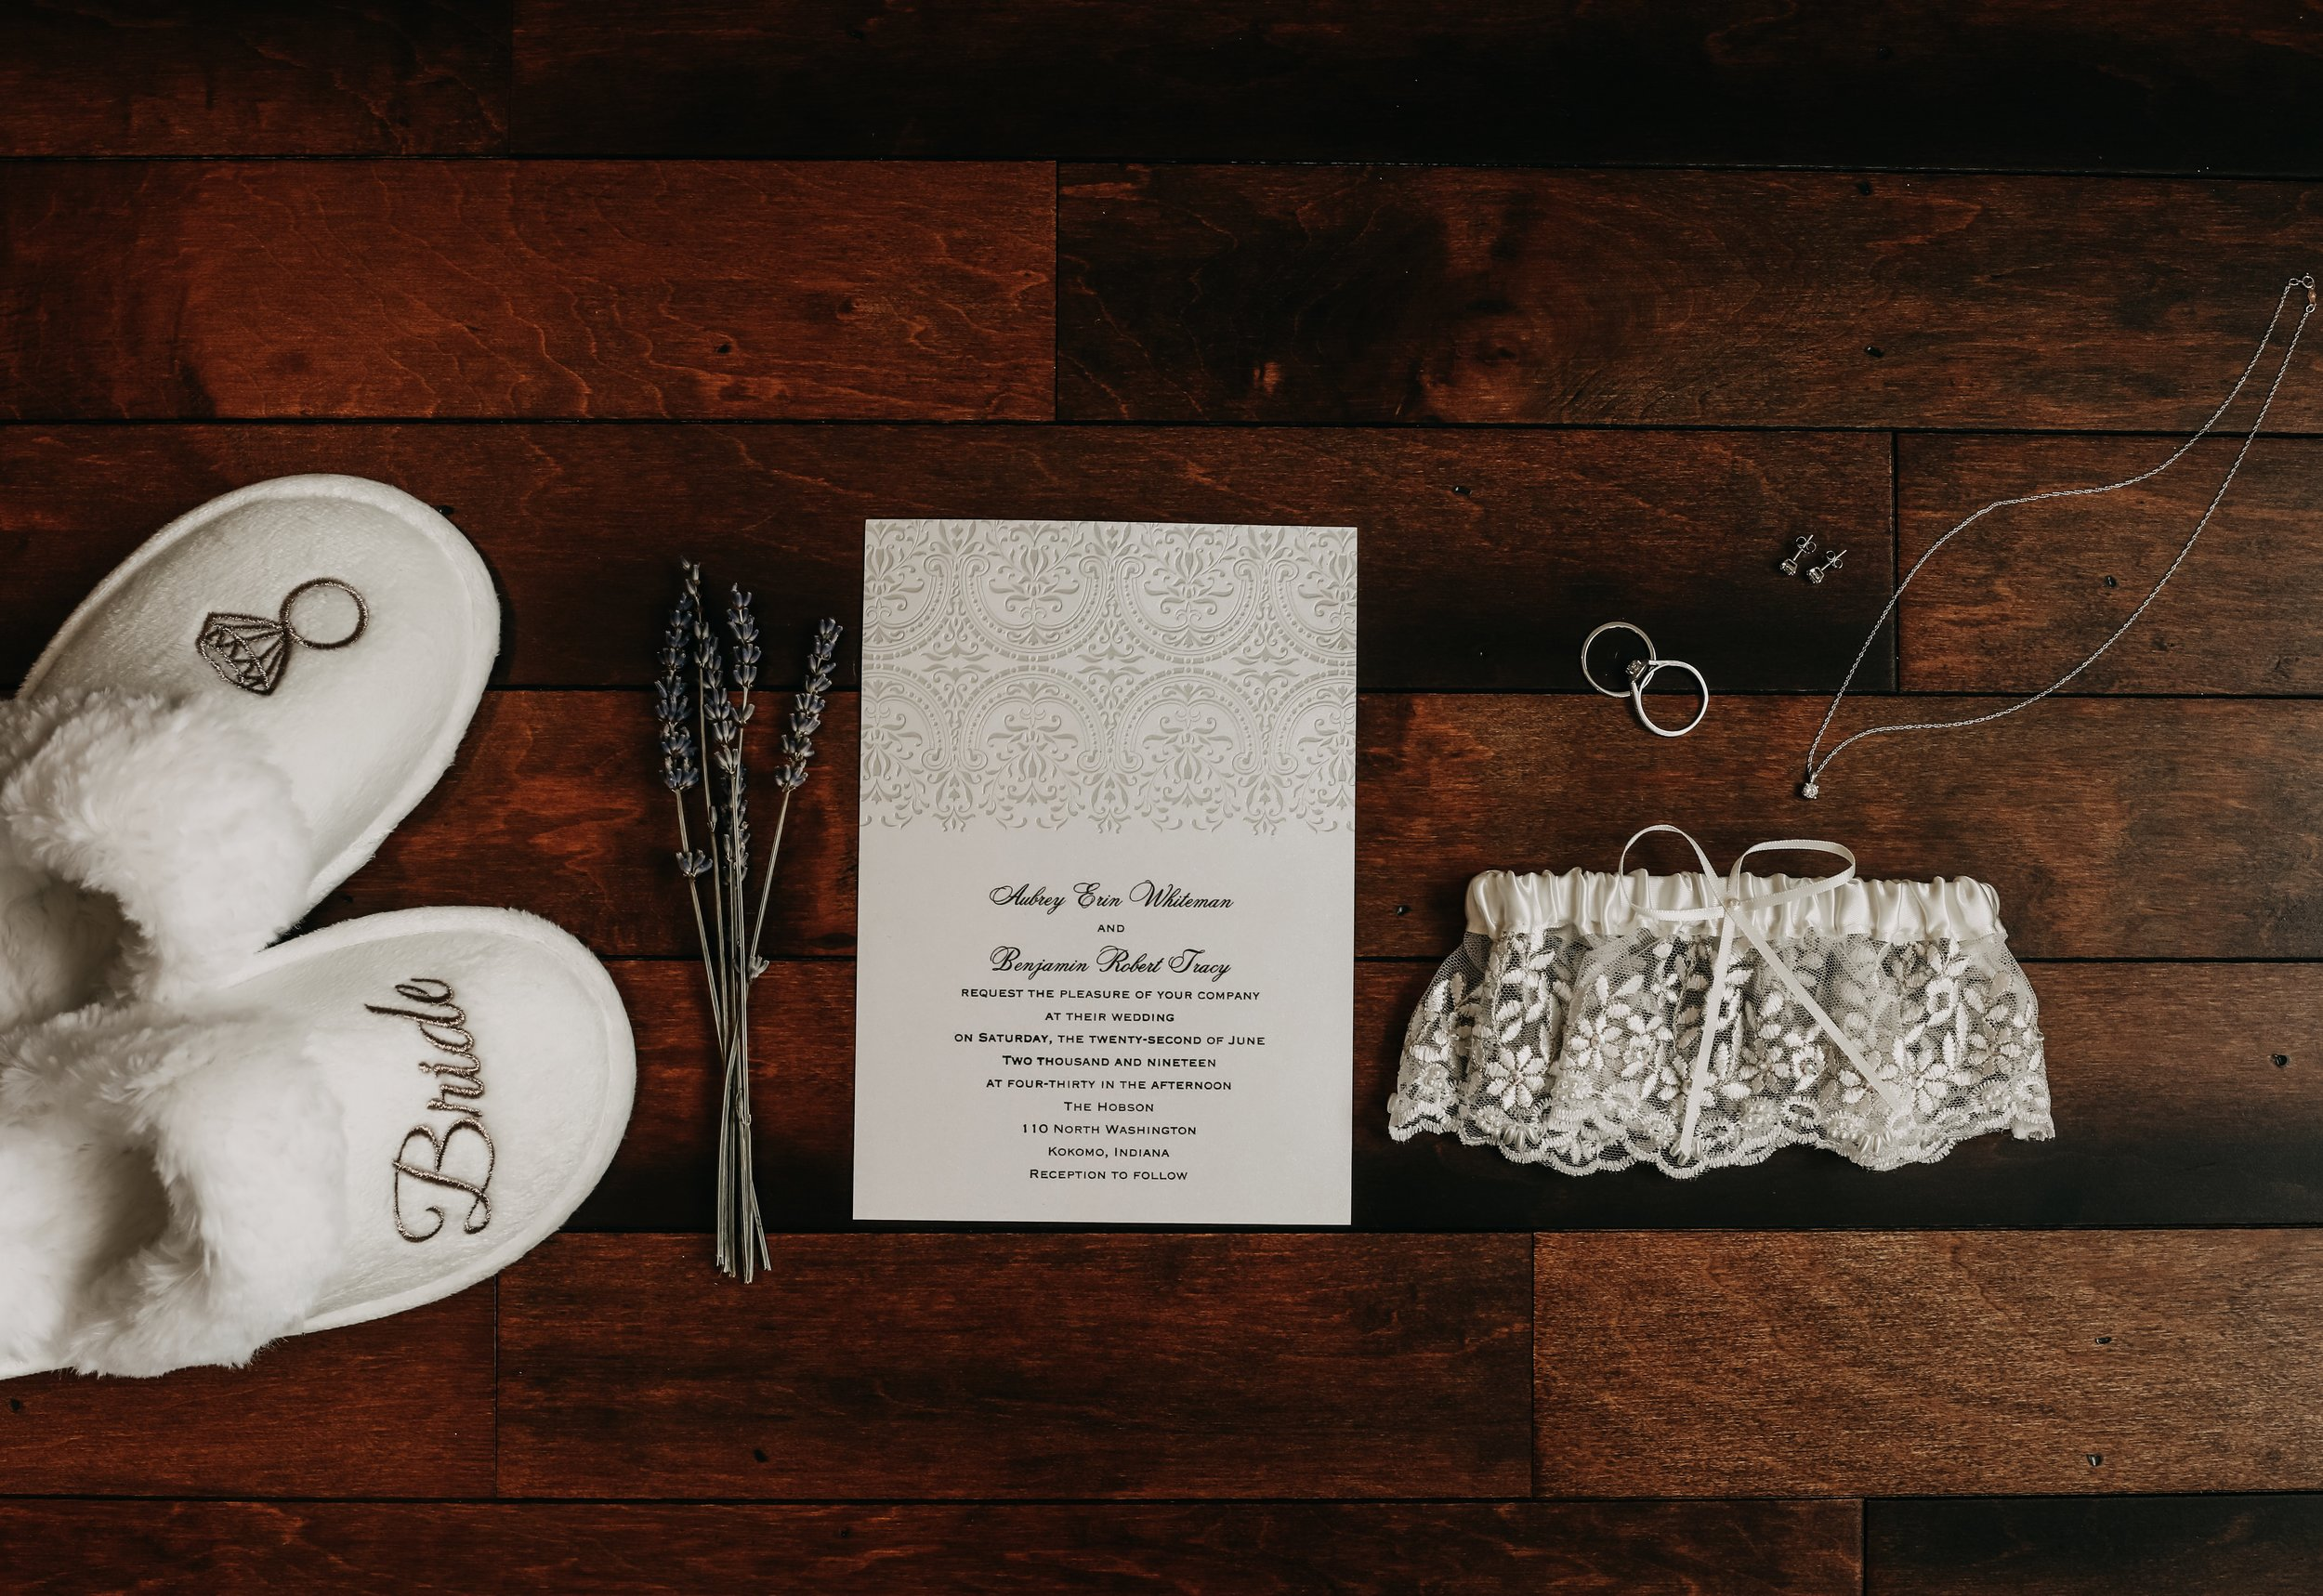 Getting married? - Click here for a one stop shop to make sure you are completely prepared for your wedding day.